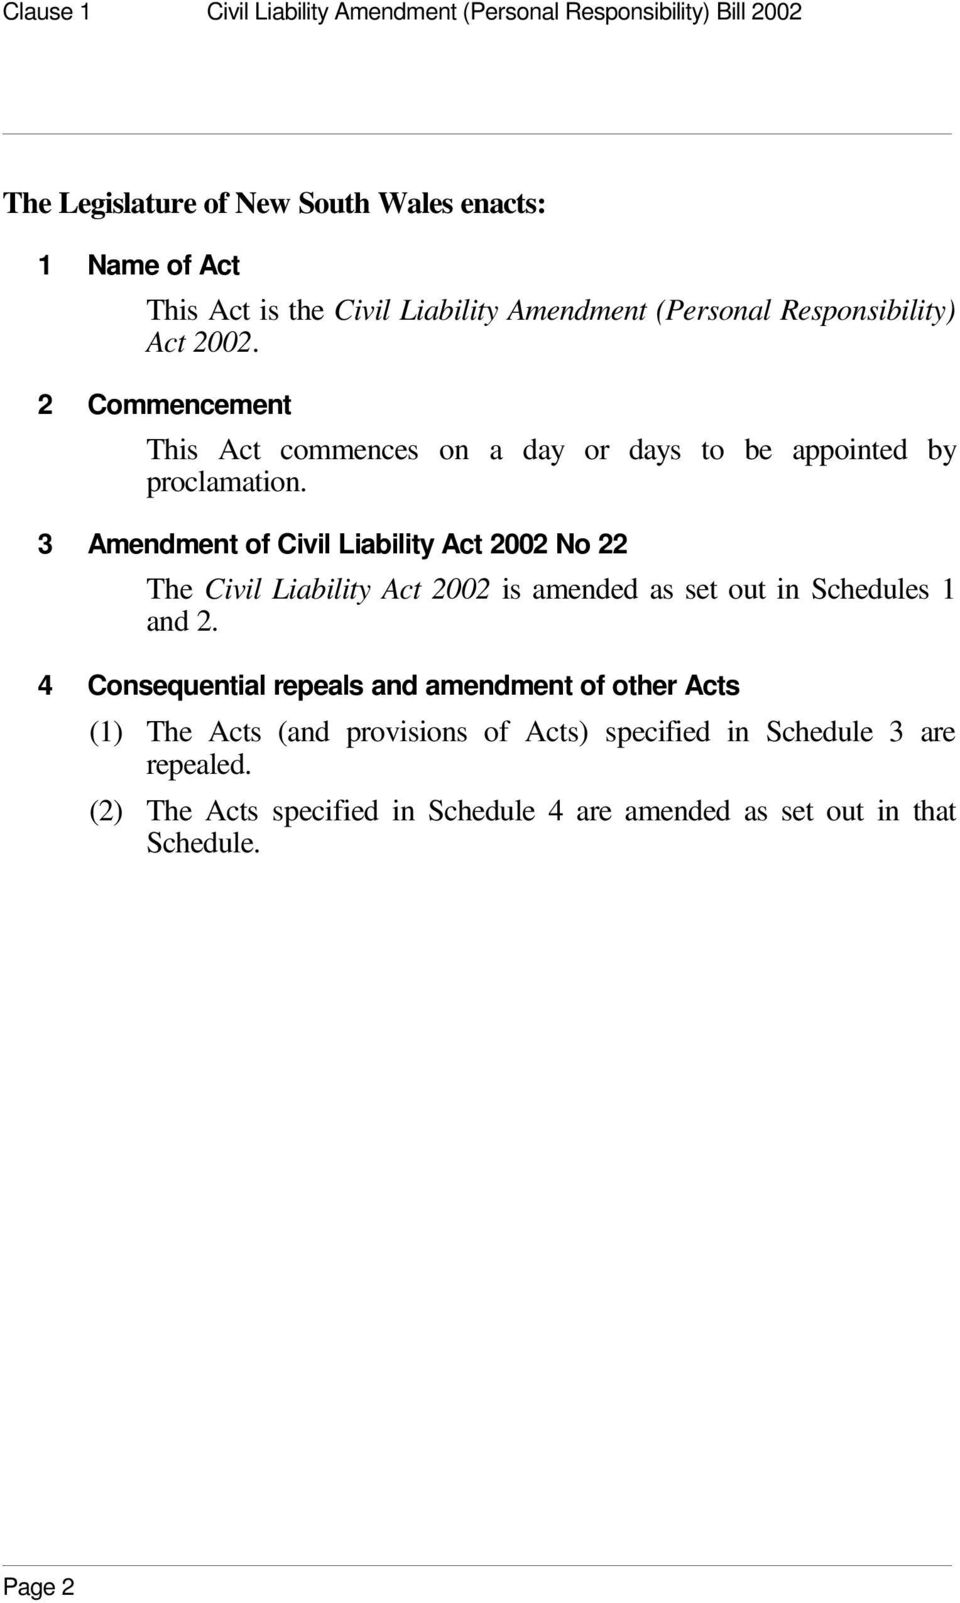 3 Amendment of Civil Liability Act 2002 No 22 The Civil Liability Act 2002 is amended as set out in Schedules 1 and 2.